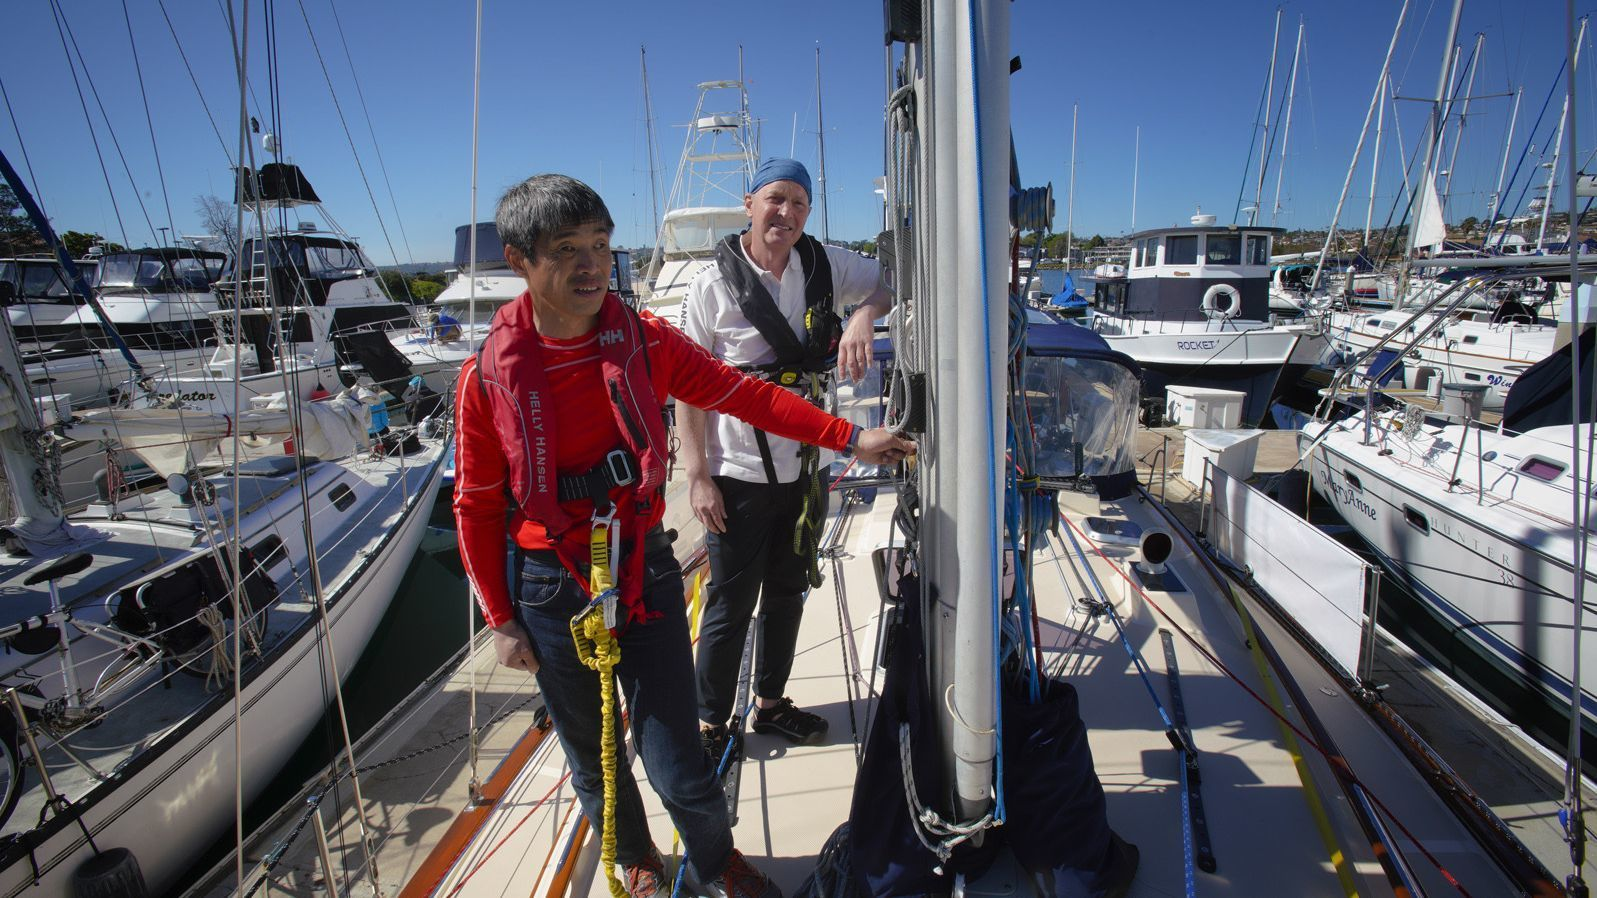 Five years after whale scuttled first attempt, blind sailor aims for nonstop Pacific crossing